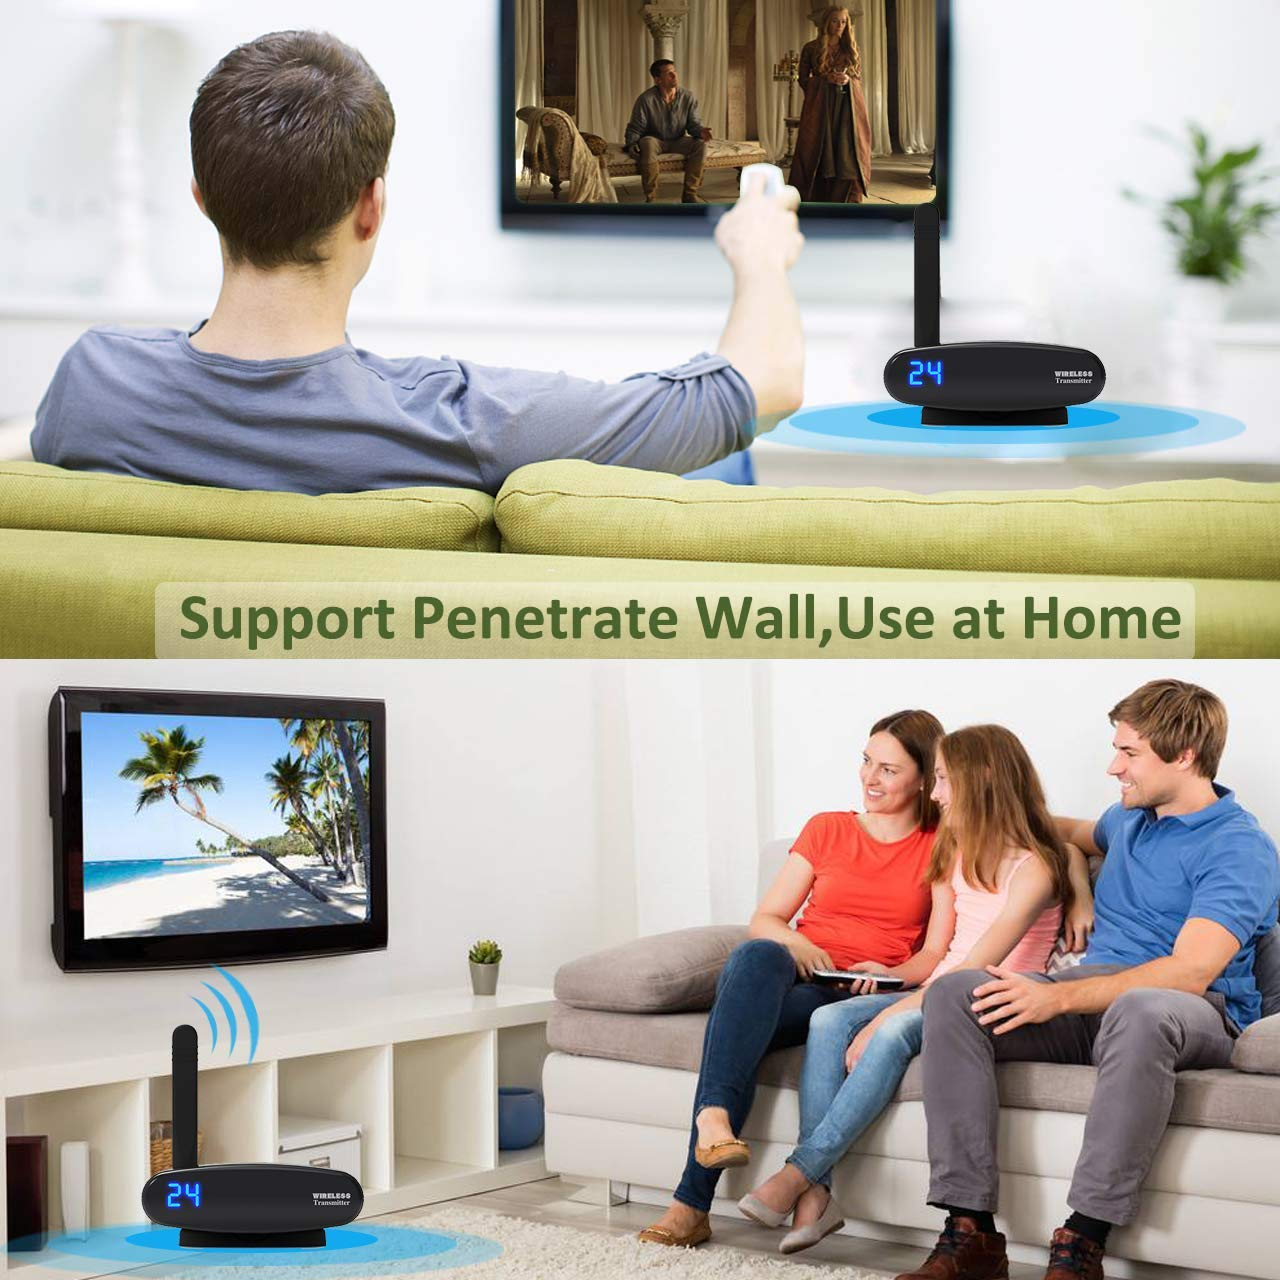 VR-robot Wireless TV Audio Video Transmitter and Receiver, Digital Signal Max 300 Feet Transmission for Cable Box/Computer/PC-Projector/Monitor/TV Display with IR Remote Extender by VR-robot